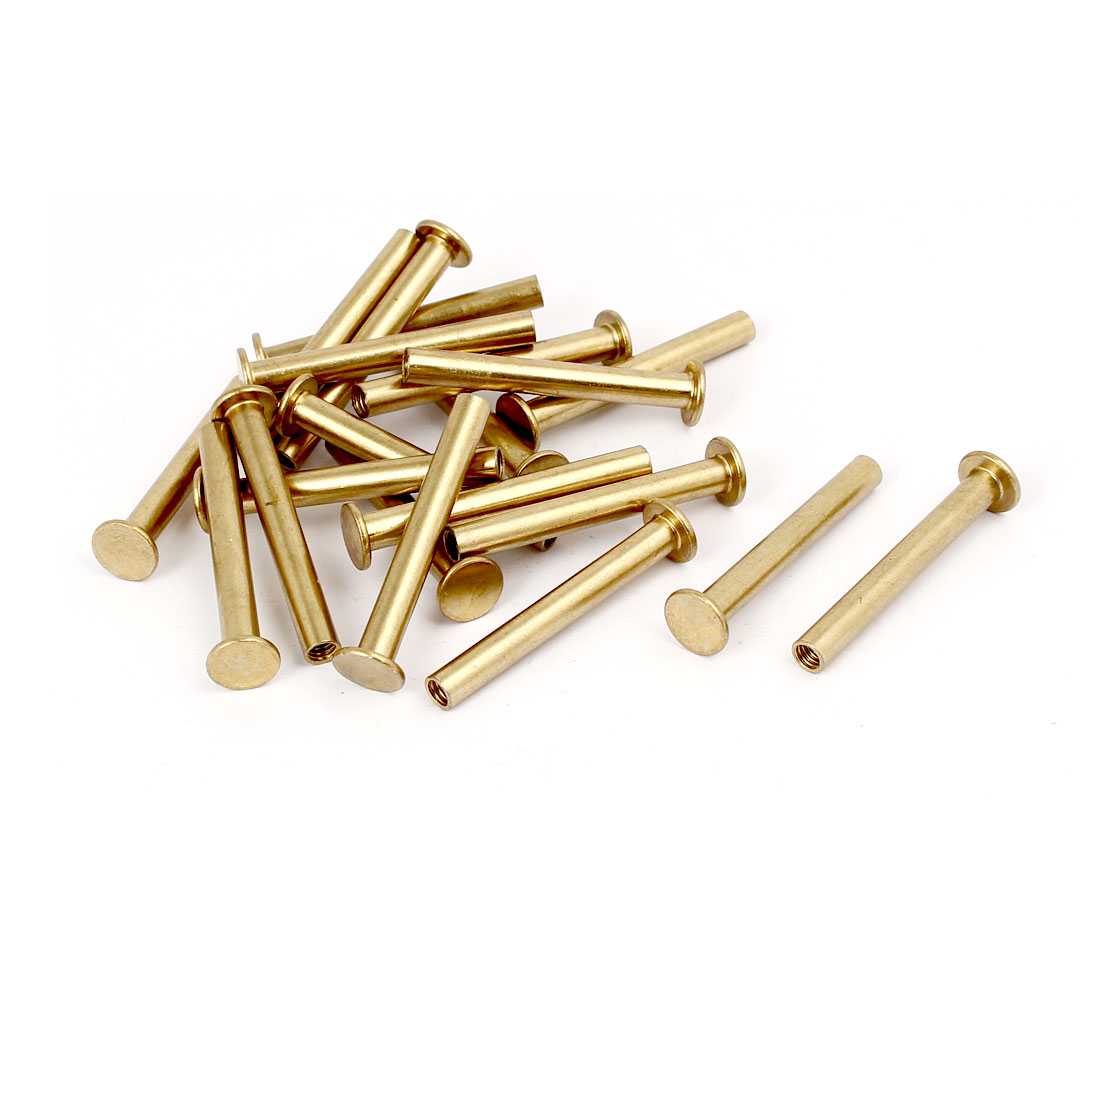 Photo Album Metal Brass Plated Binding Screw Post Barrel Nut 5mmx40mm 20pcs